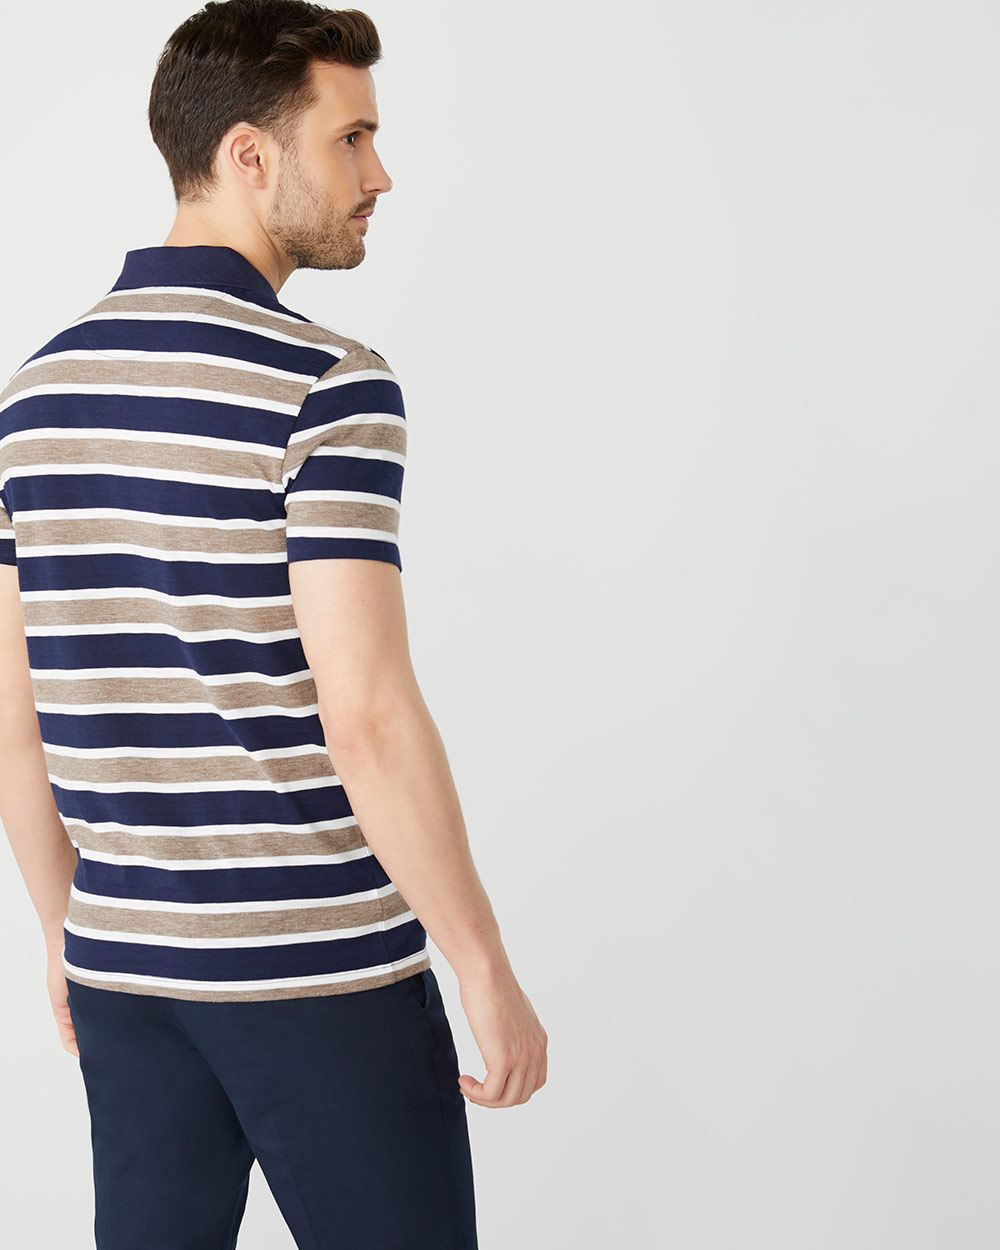 Short Sleeve striped slub polo